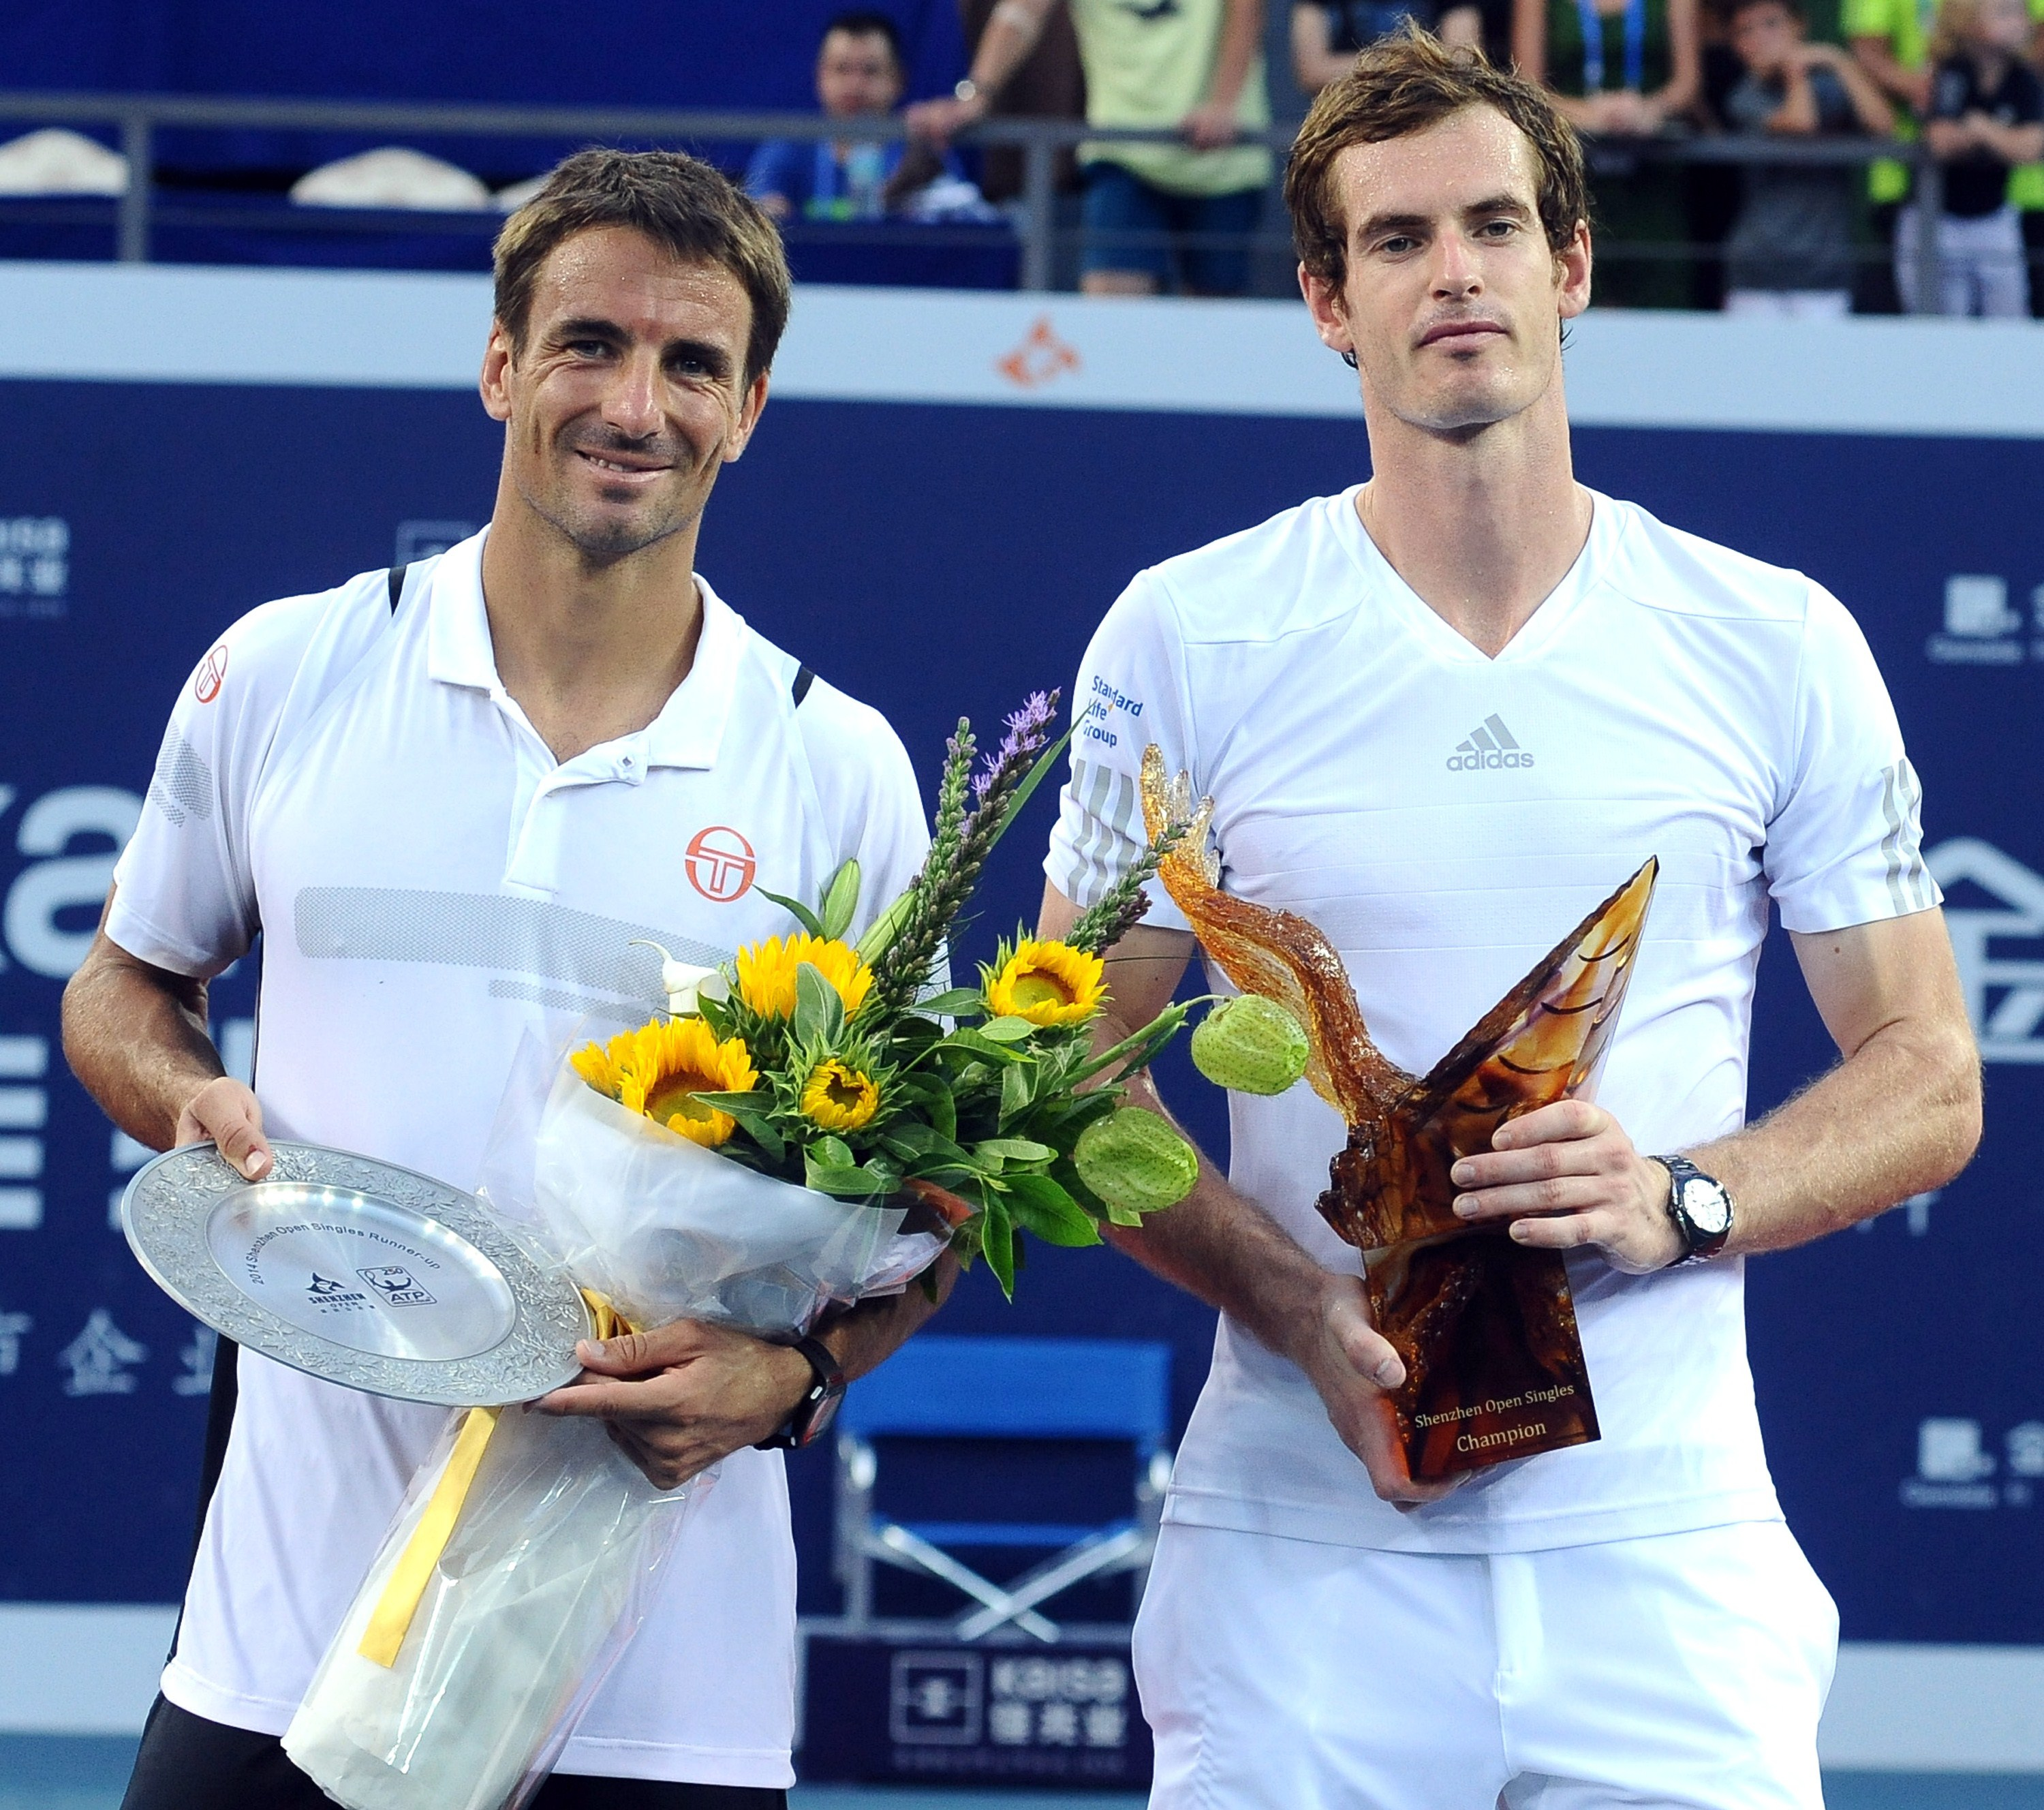 Andy Murray defeated Tommy Robredo to end a 15-month title draught.